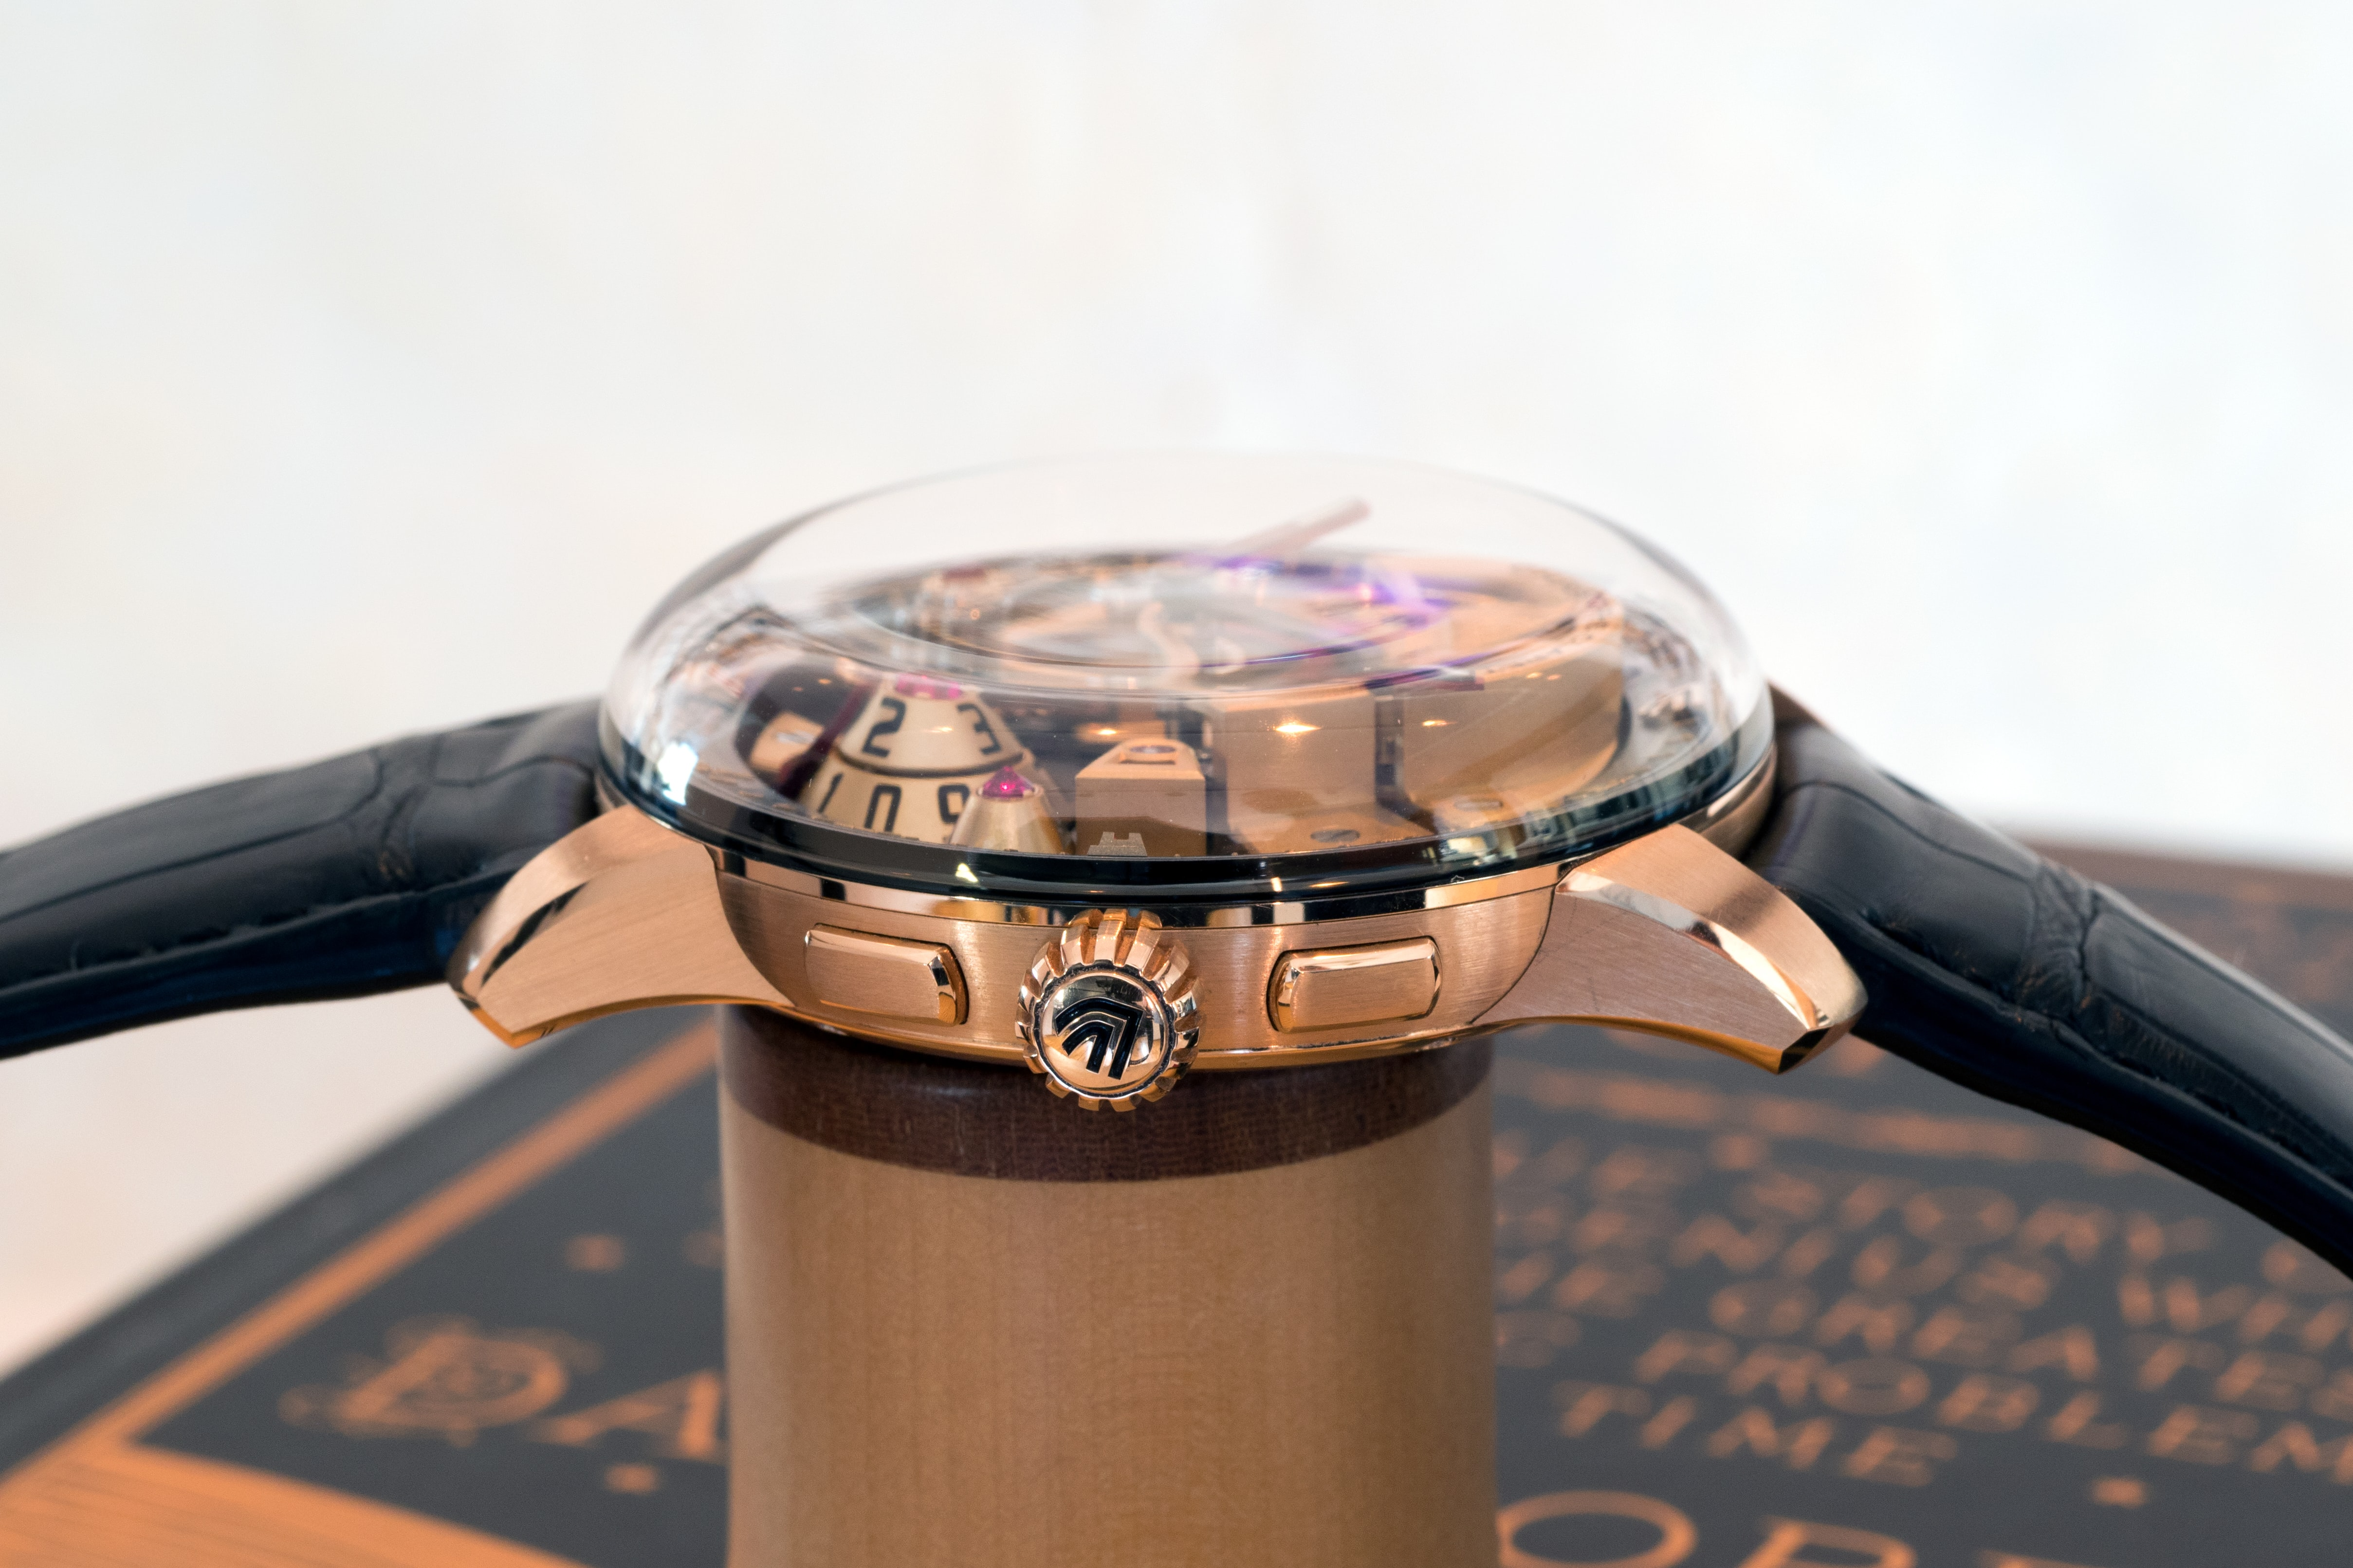 Claret Maestro side view Hands-On: The Christophe Claret Maestro Hands-On: The Christophe Claret Maestro P7262018